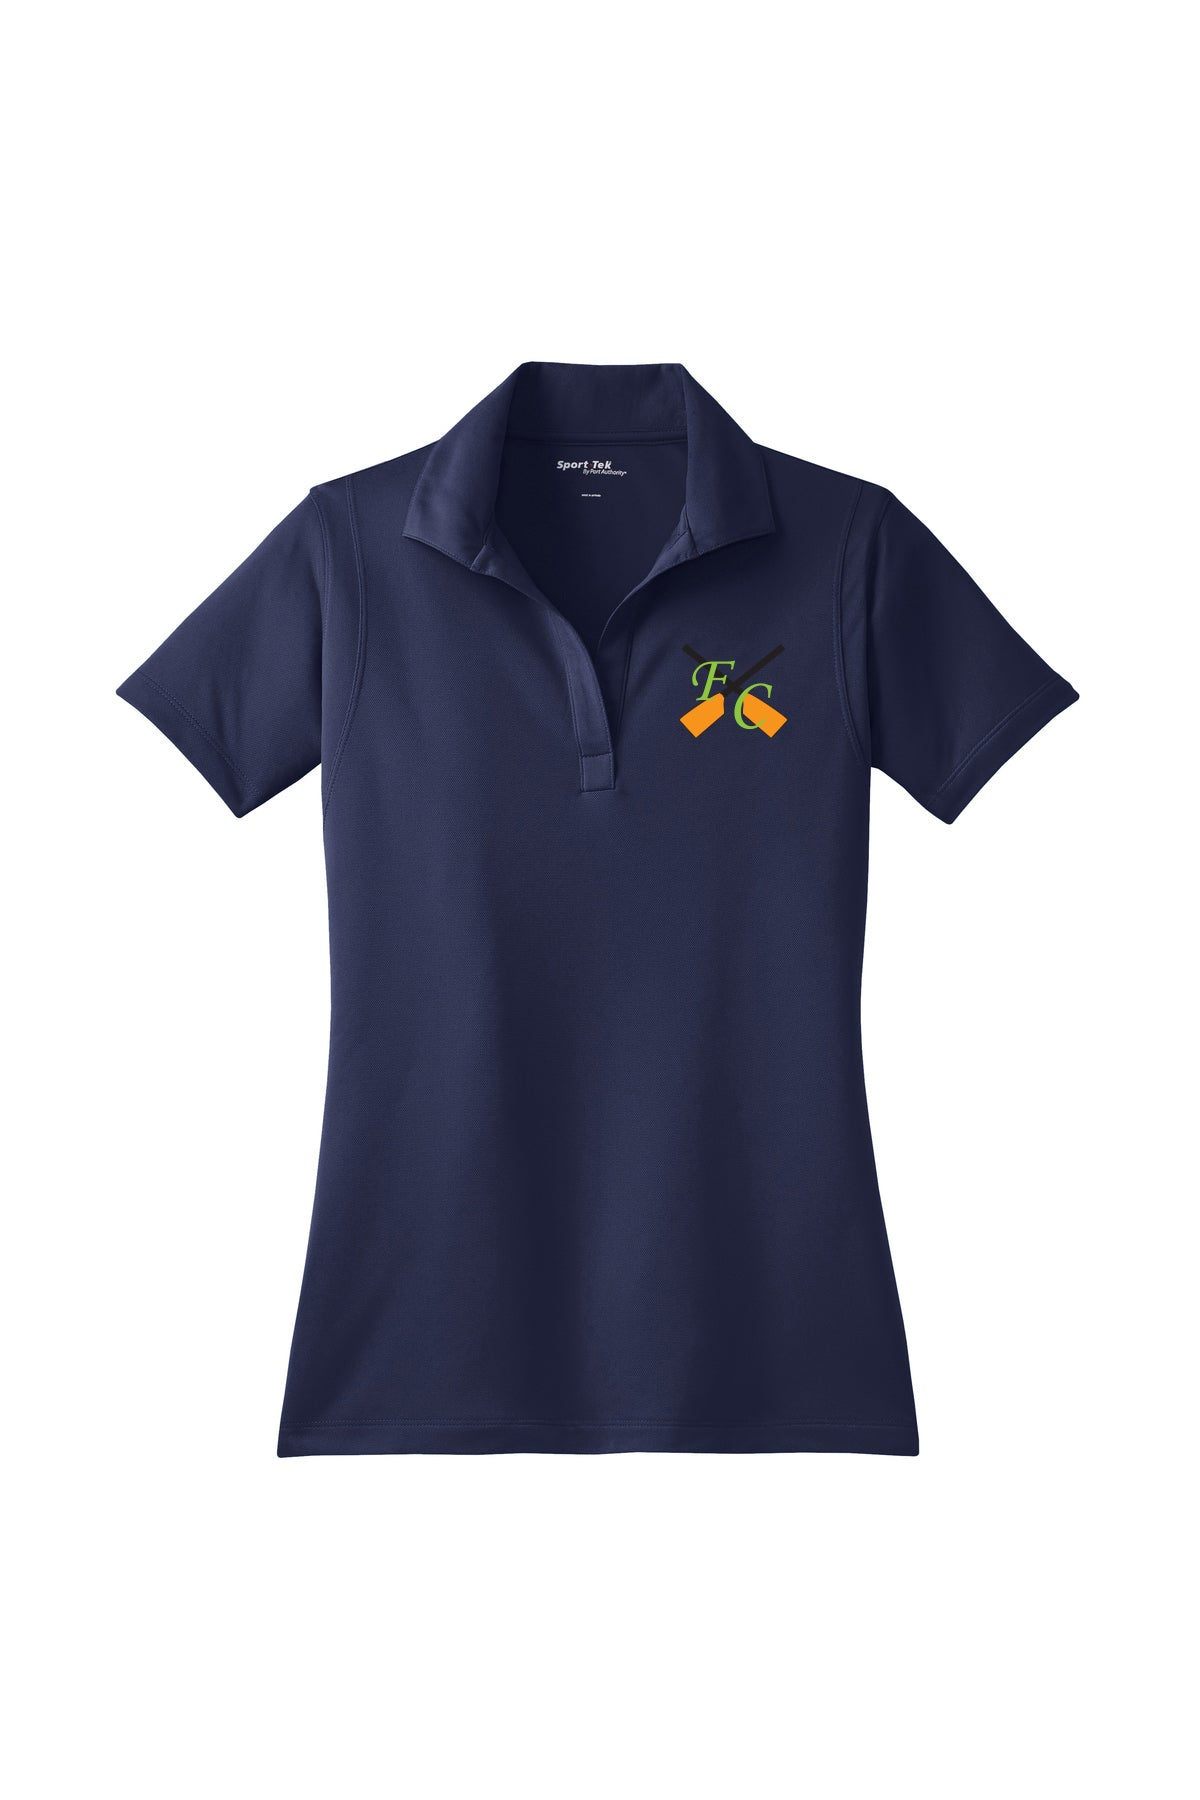 FCRA Embroidered Performance Ladies Polo